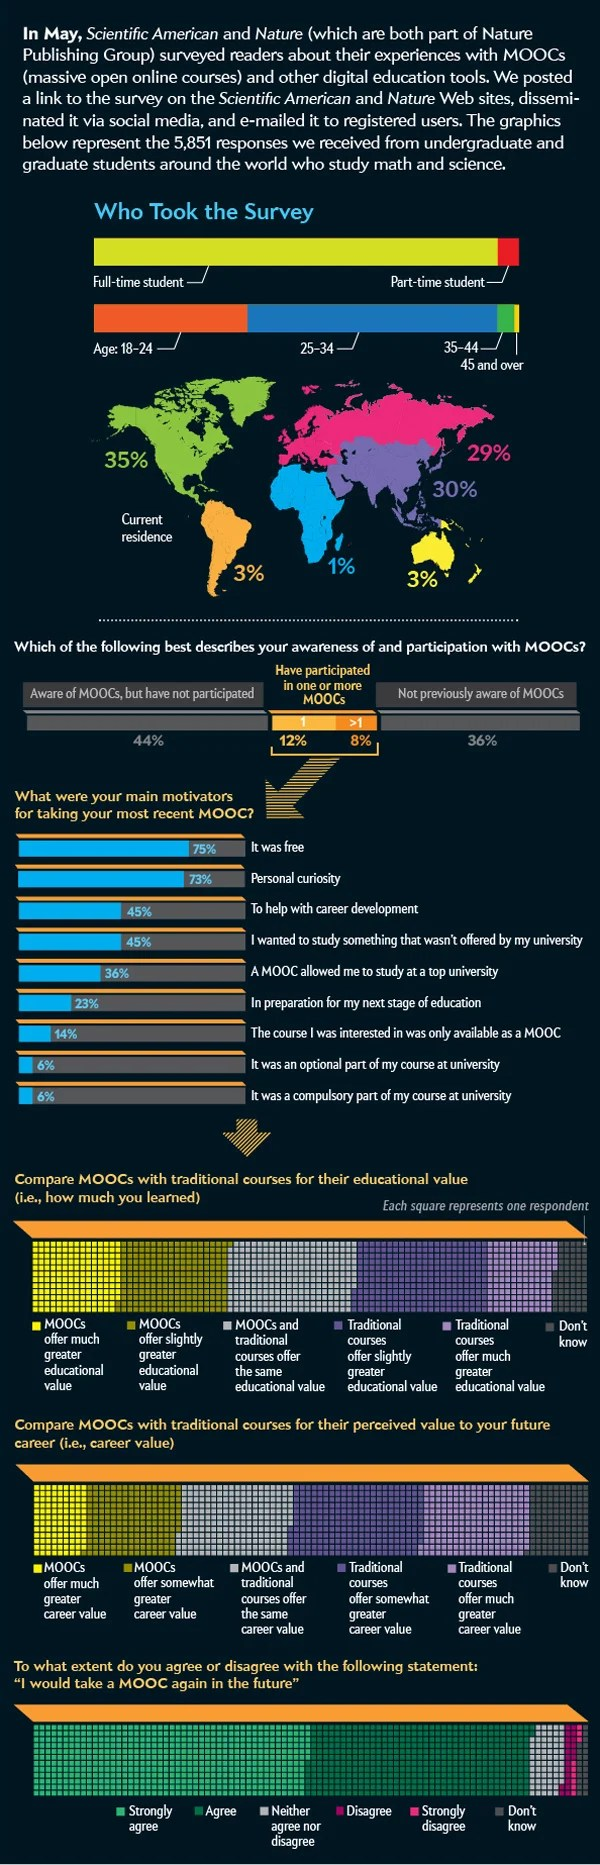 Slightly larger percentages said they would take a mooc in the future and would recommend moocs to others